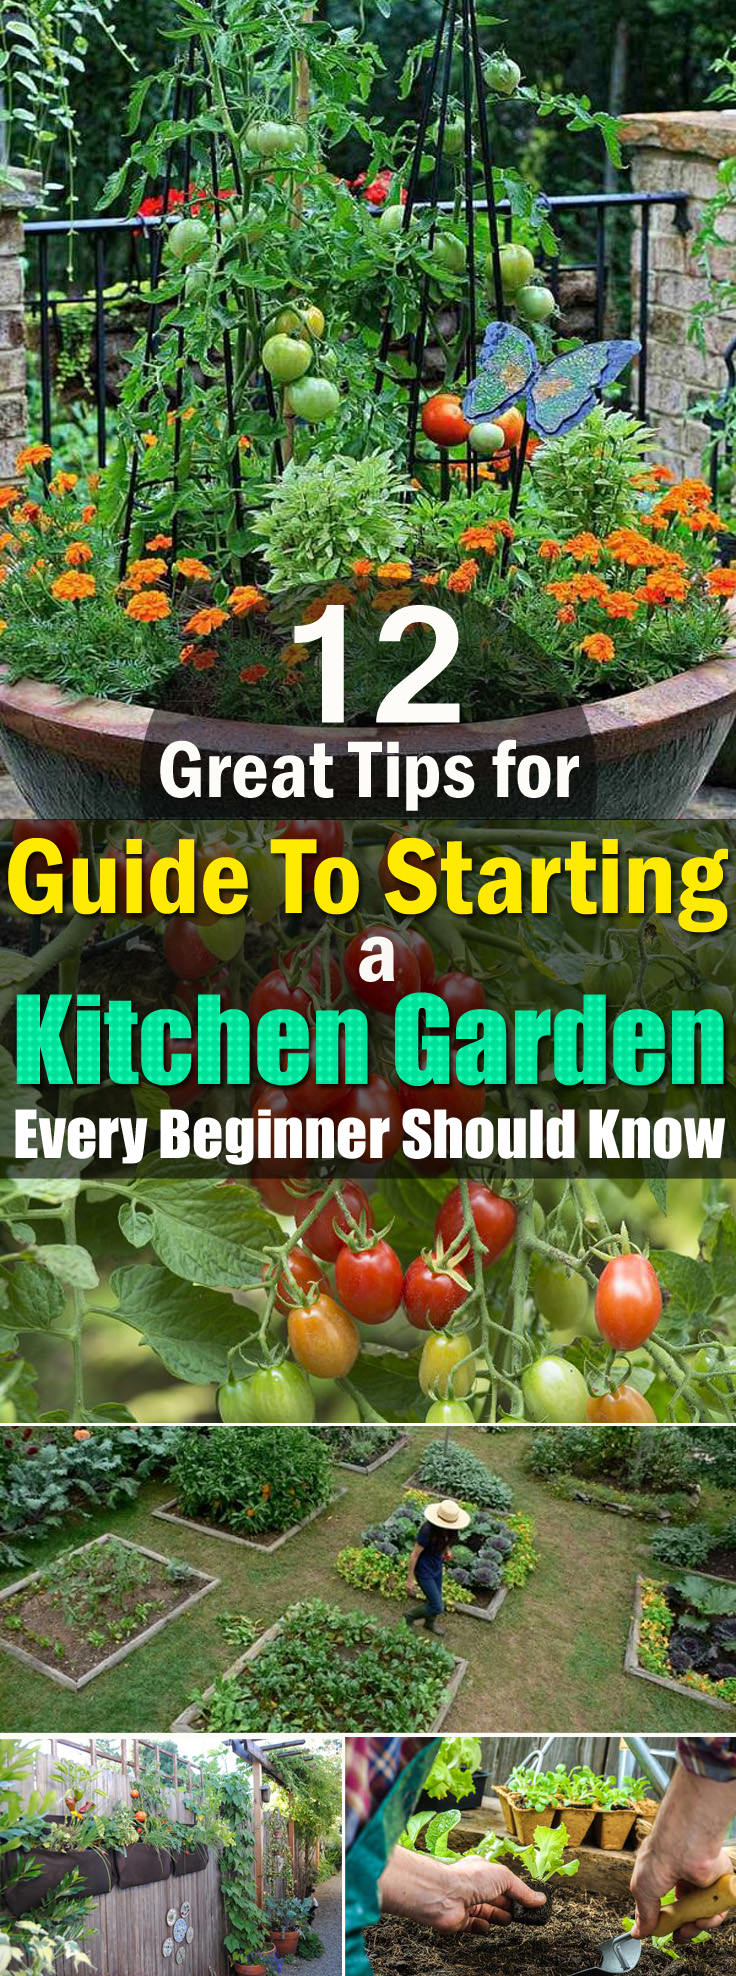 Check Out The 12 Best Beginner Tips, If Youu0027re Starting A Kitchen Garden